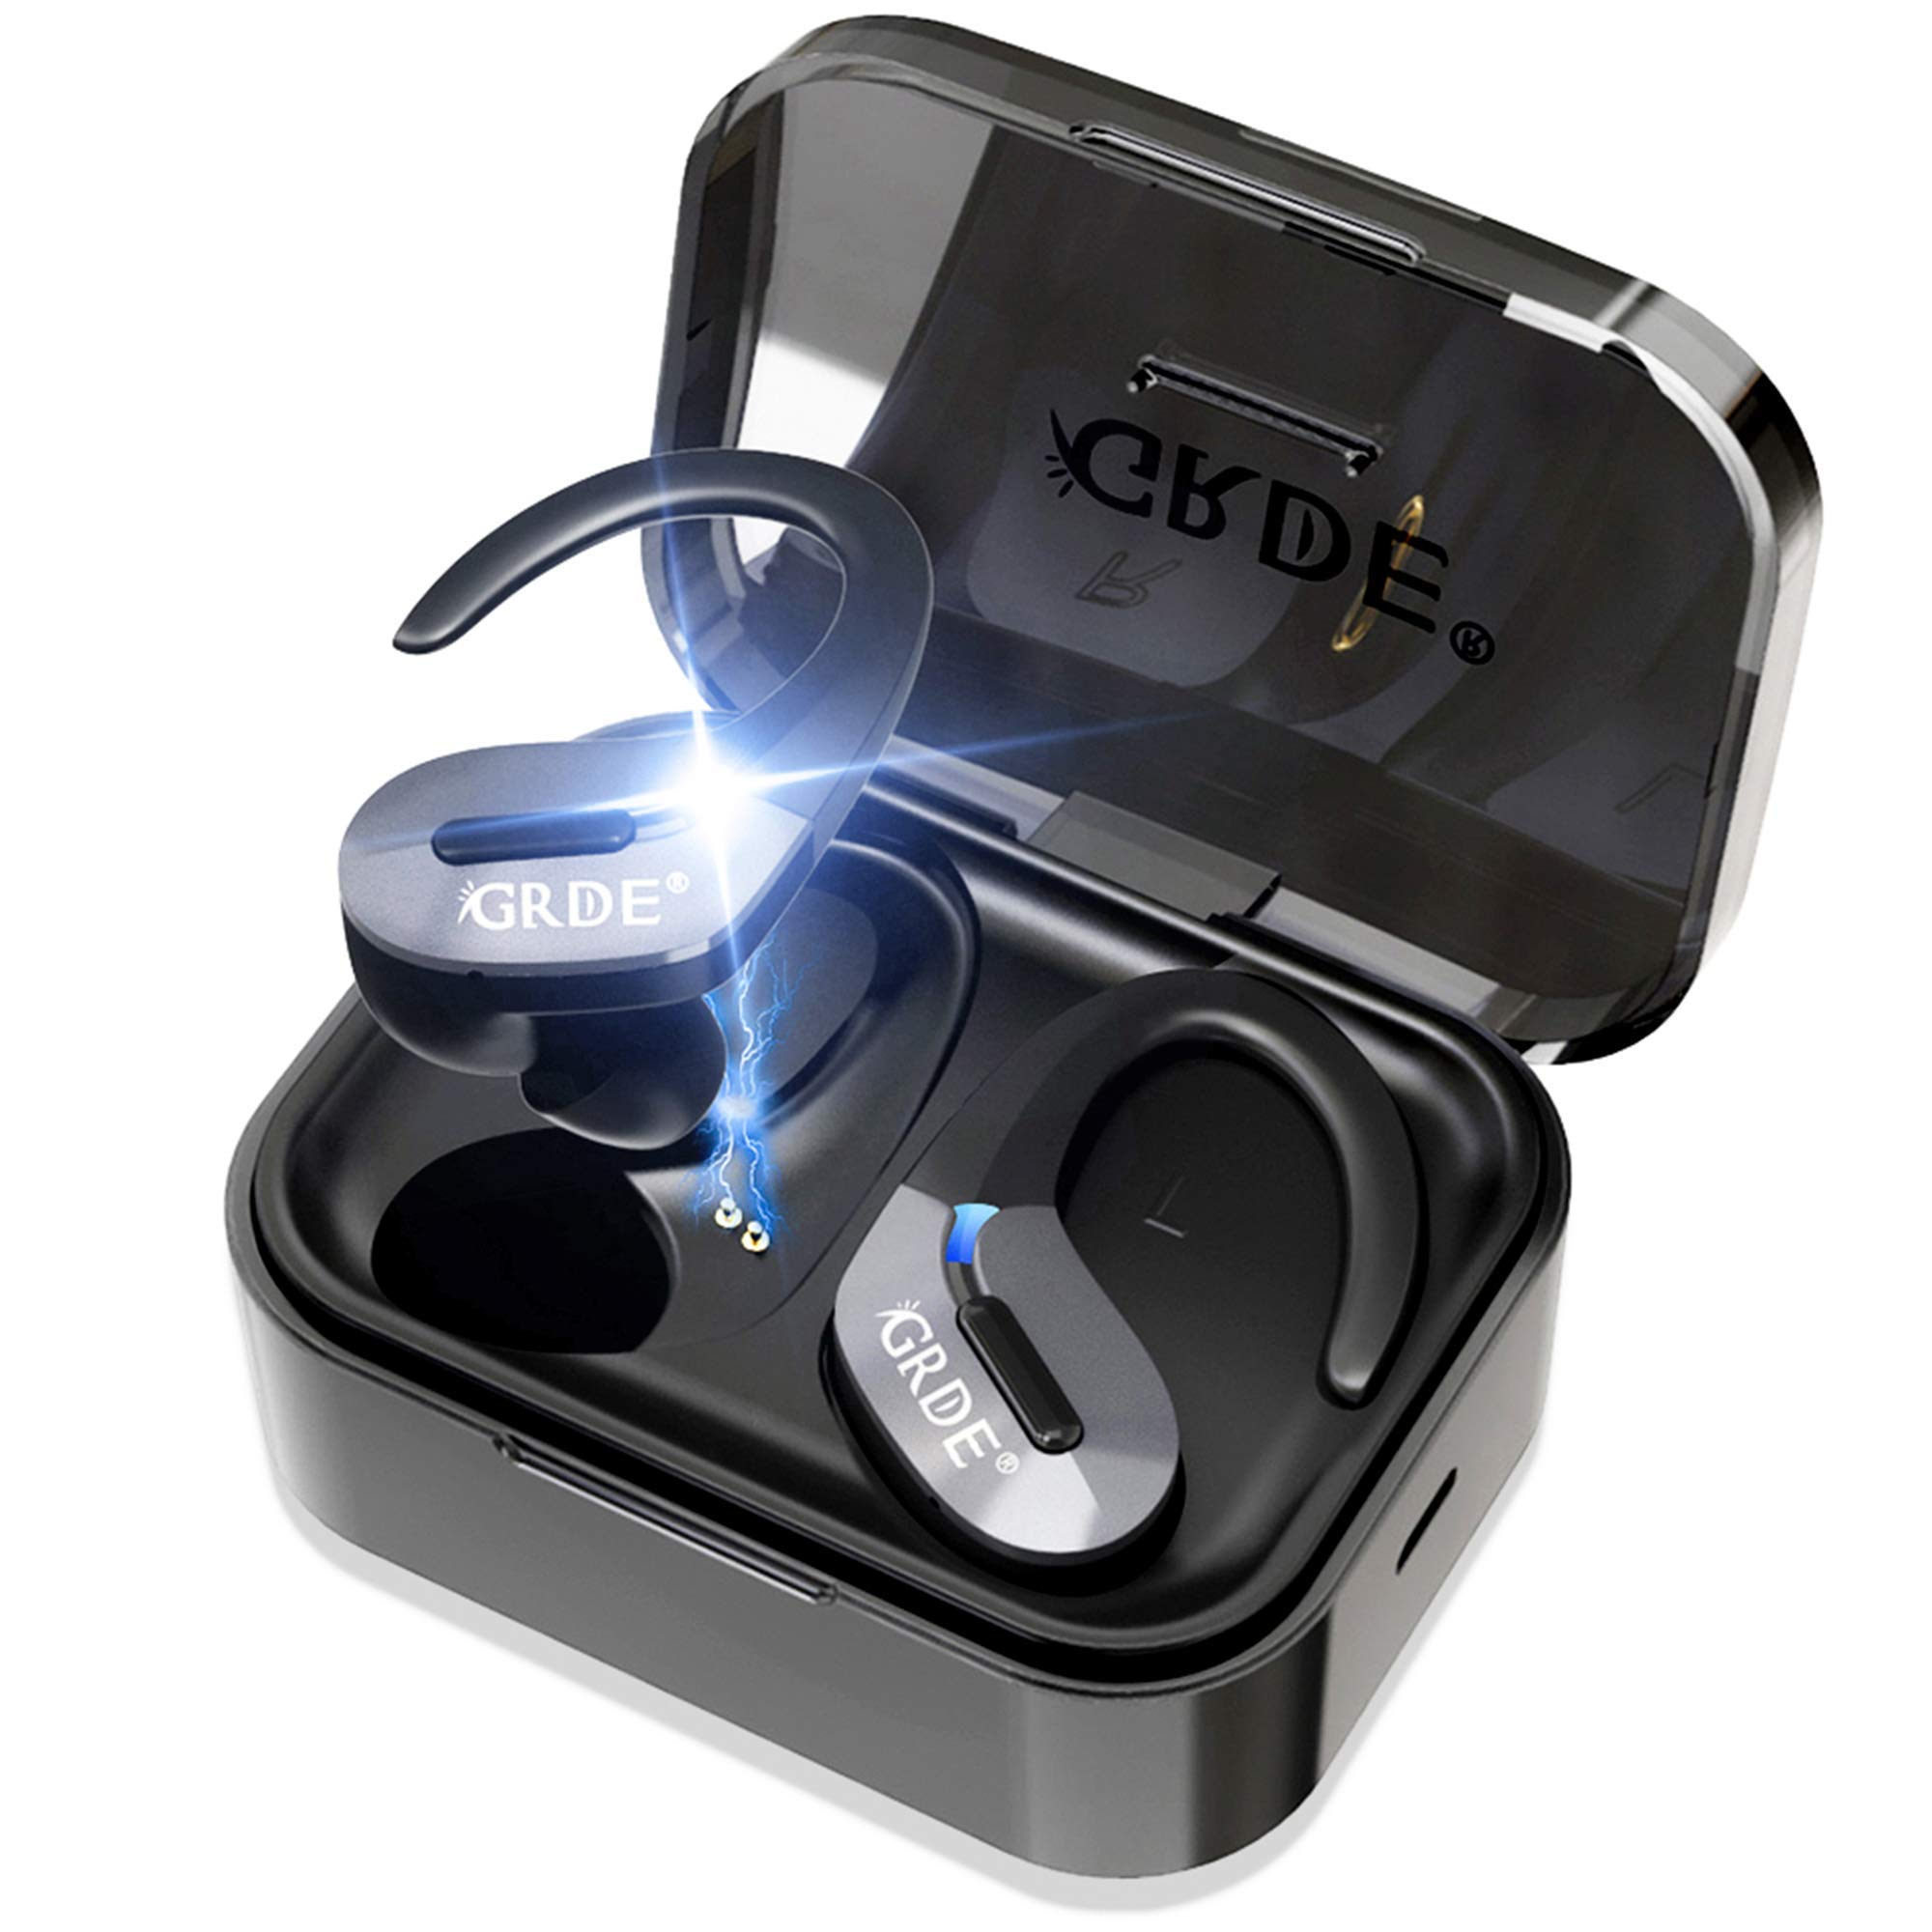 Wireless Earbuds, Bluetooth 5.0 Headphones True Wireless Earbuds Sports in-Ear TWS Stereo HiFi Sound Bluetooth Earbuds 30H Playtime Wireless Earphones with Charging Case[2019 Version] by GRDE